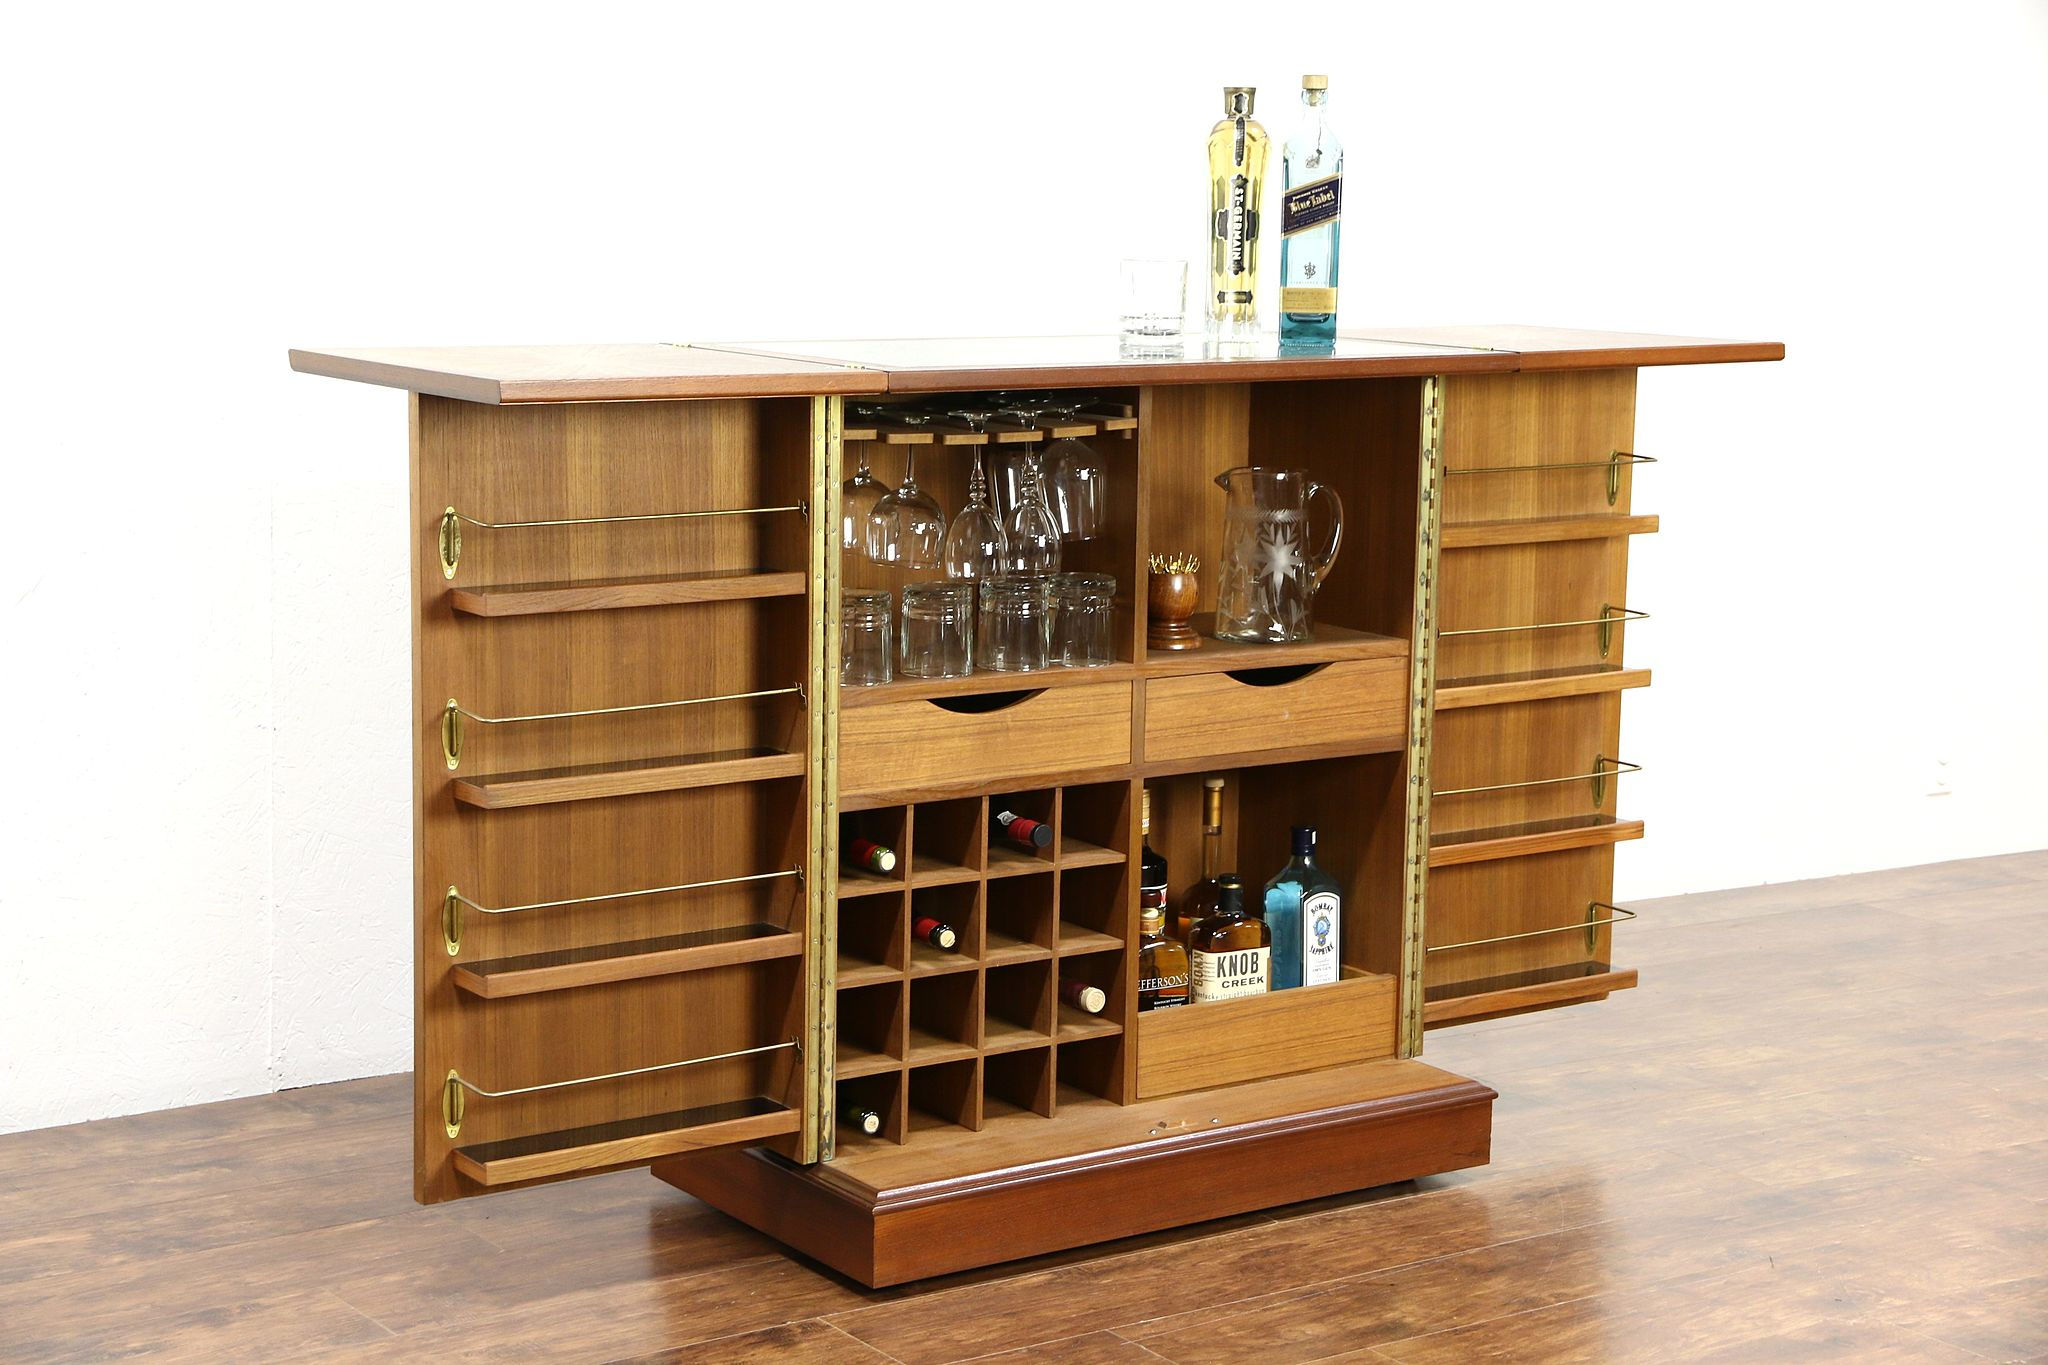 varnished cheap for classic century office where cabinets with plus and natalia american laminated base liquor buffet furniture i flip images dry wood buy rustic essentials sale stunning hanging made drawer style mid indoor walnut can bar floor modular four of heritage in top height cabinet